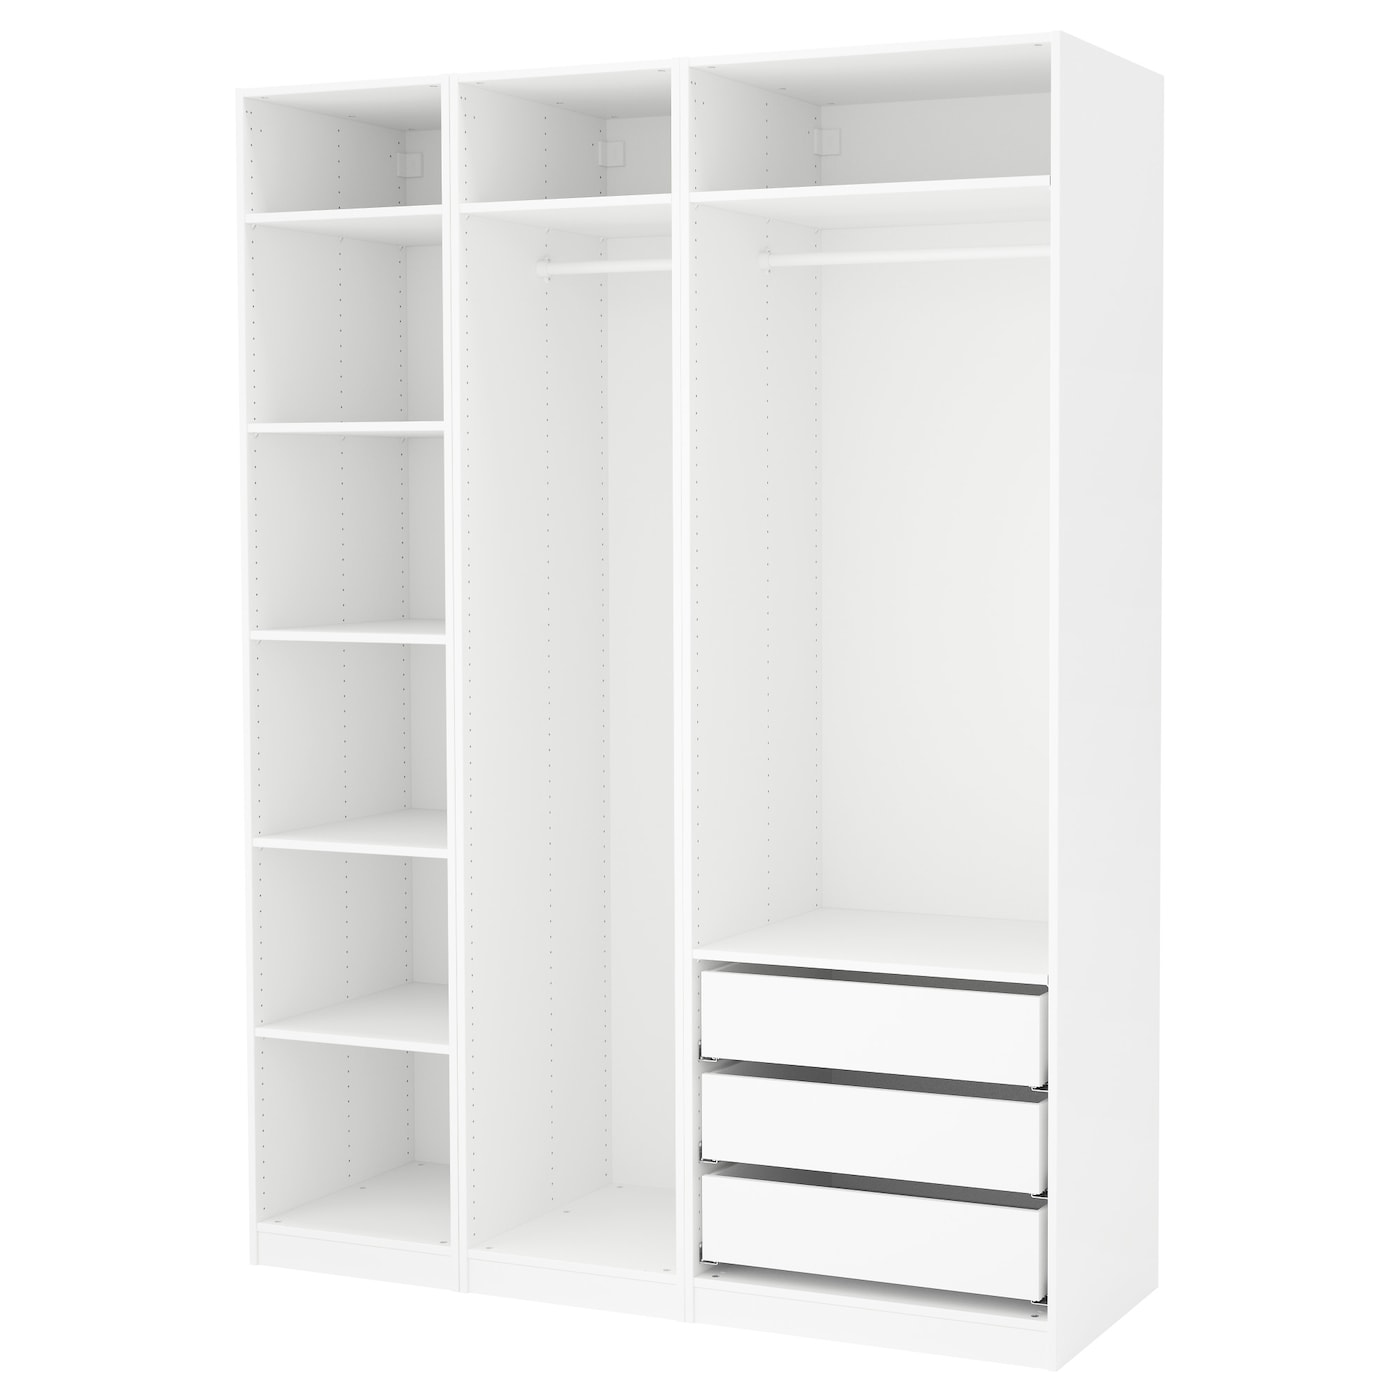 pax armoire penderie blanc 175 x 58 x 236 cm ikea. Black Bedroom Furniture Sets. Home Design Ideas